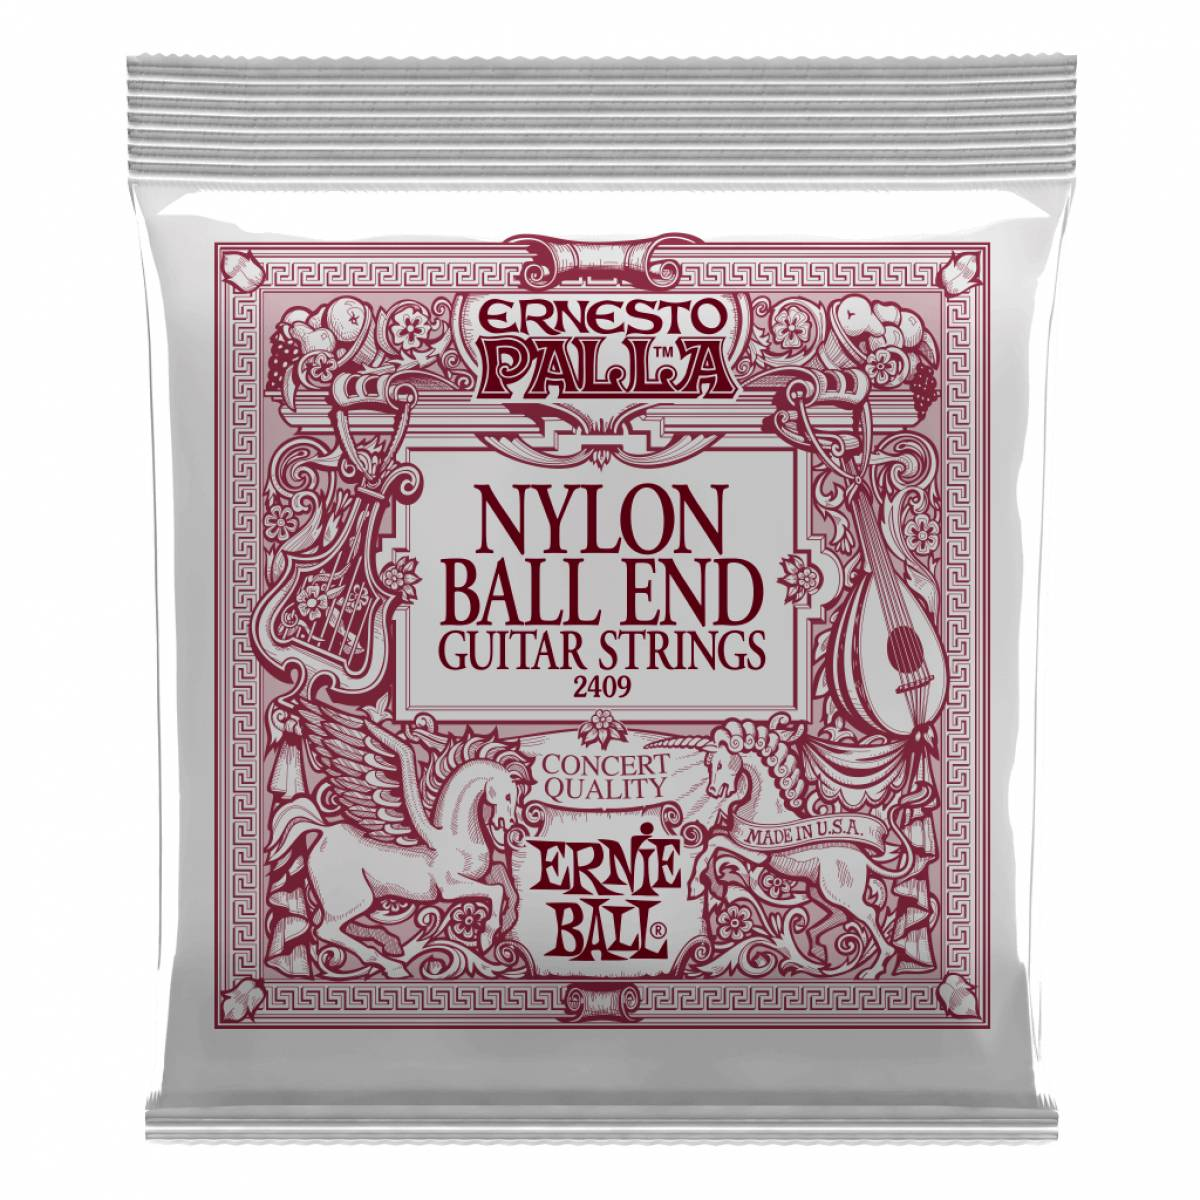 Corda para Violão Encordoamento Ernie Ball 2409 Ball End Nylon